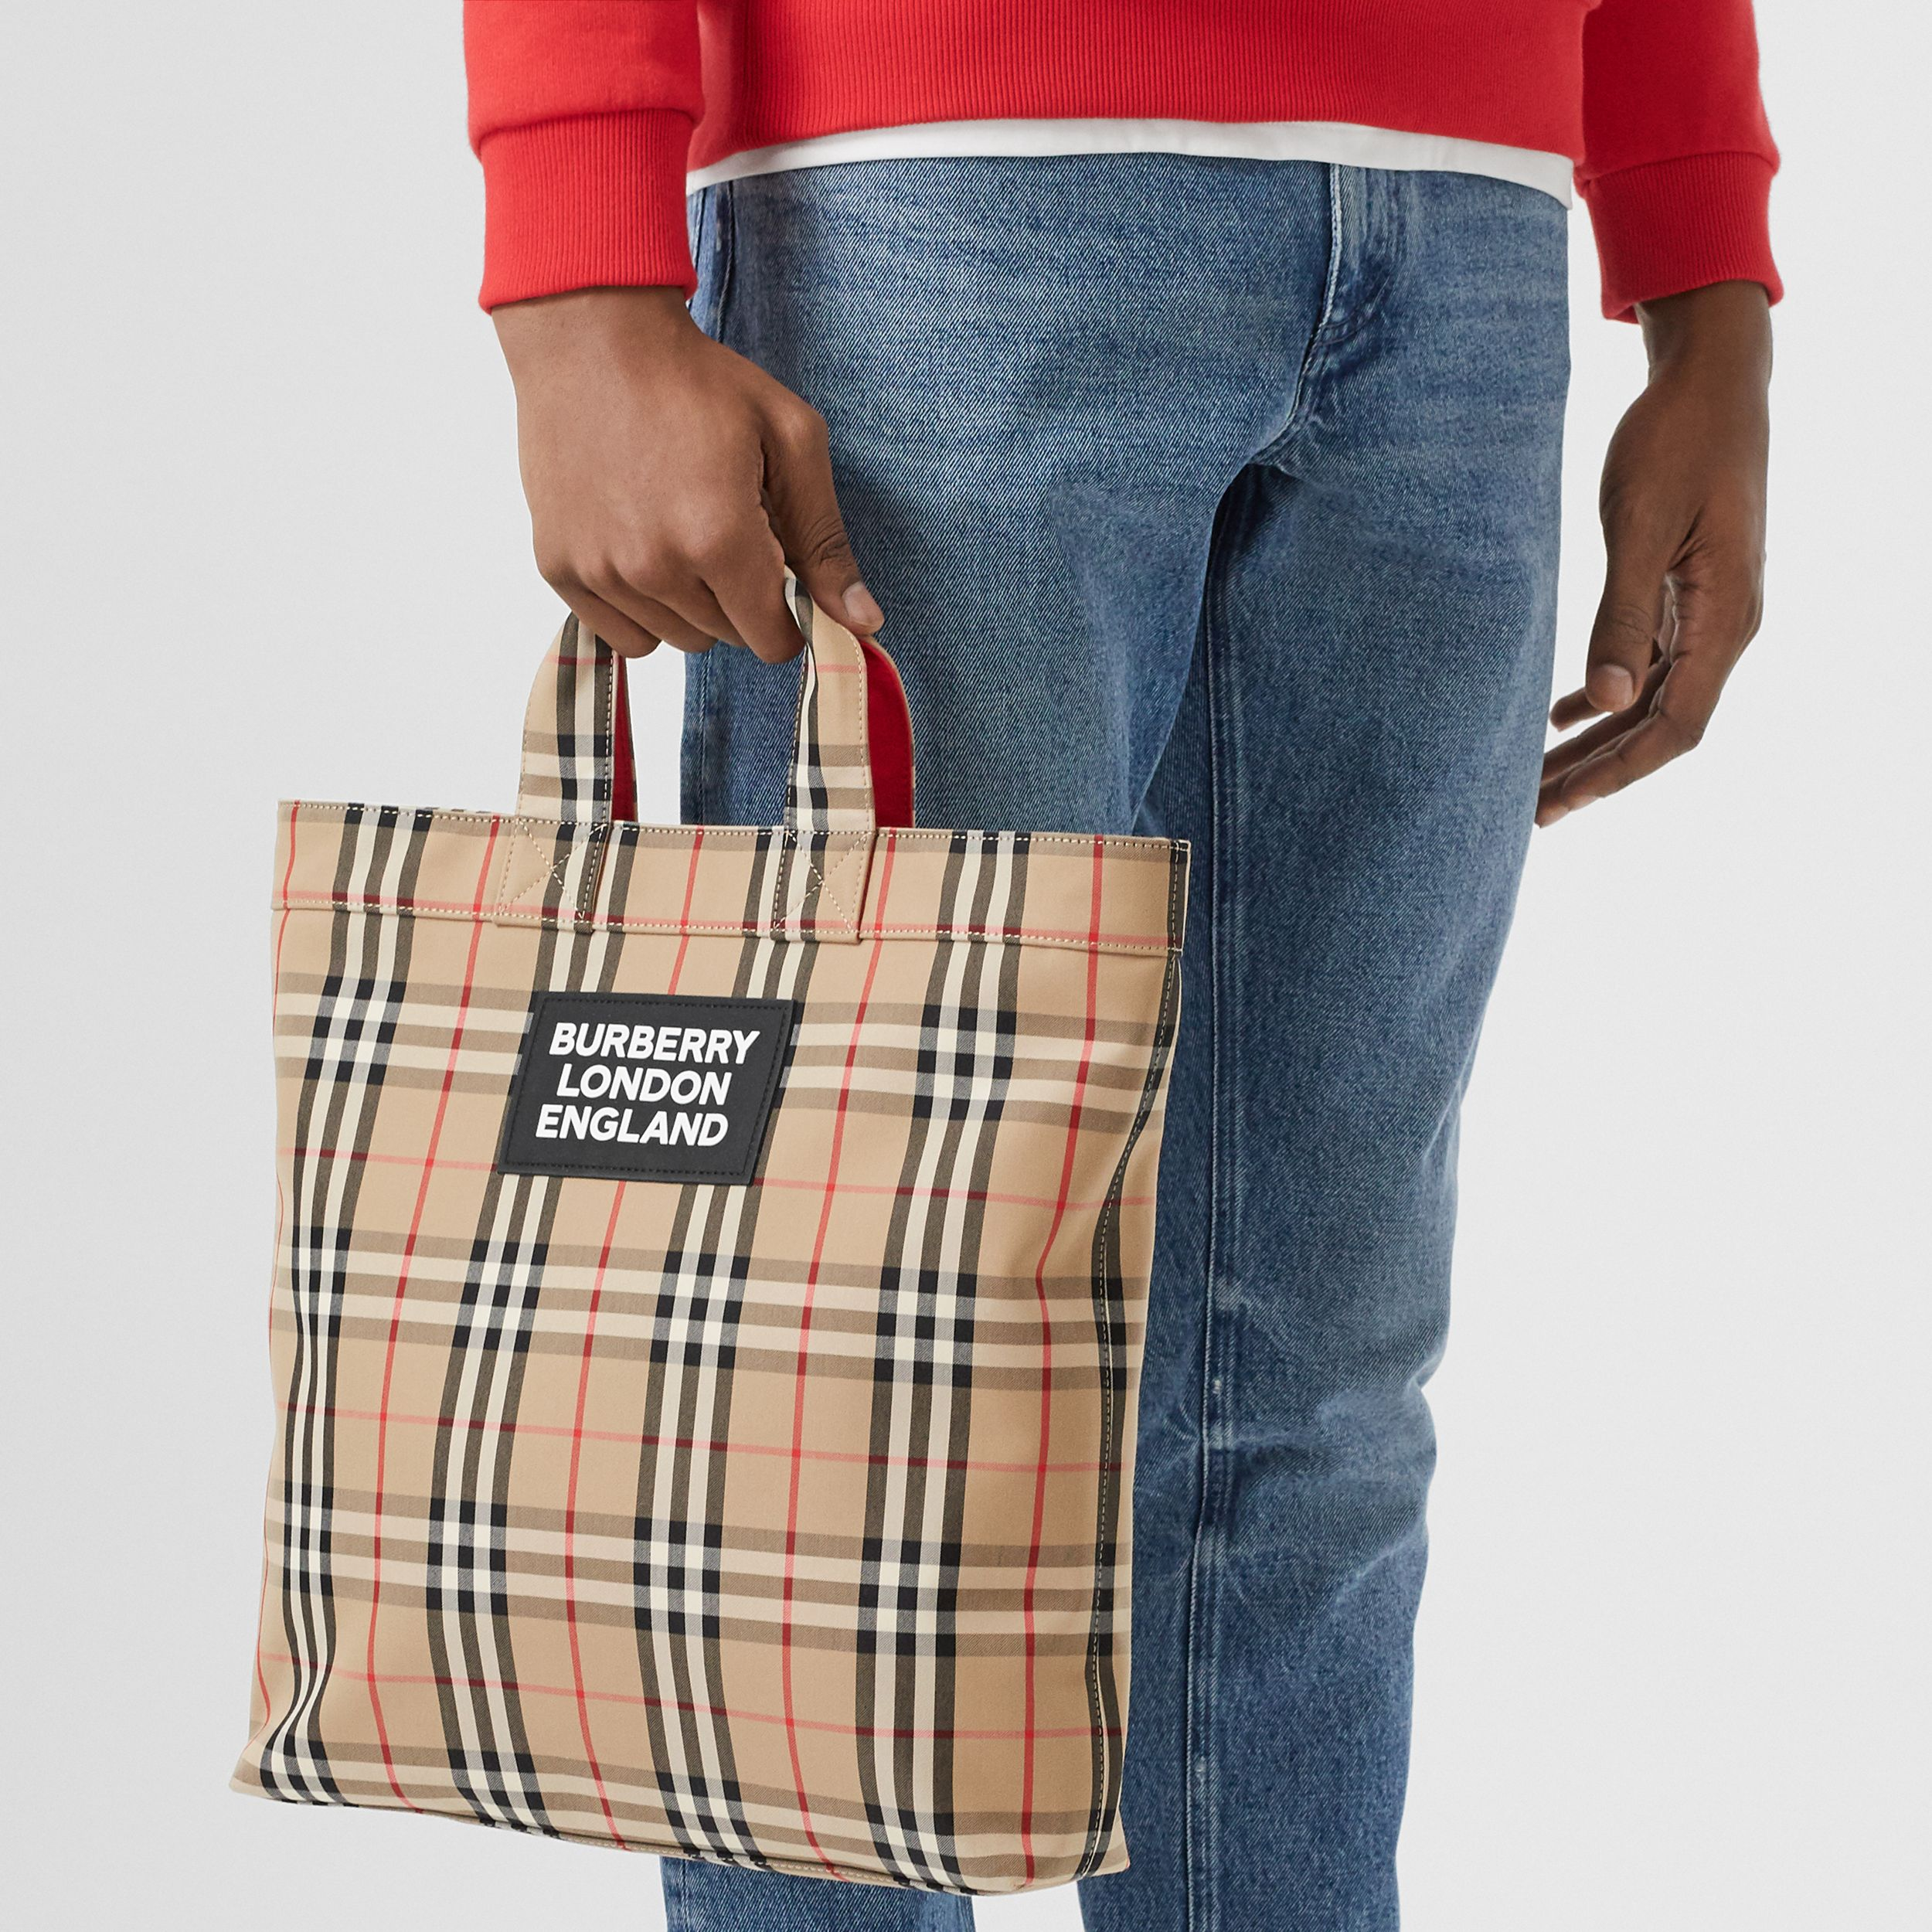 Logo Appliqué Vintage Check Cotton Blend Tote in Archive Beige - Men | Burberry - 3